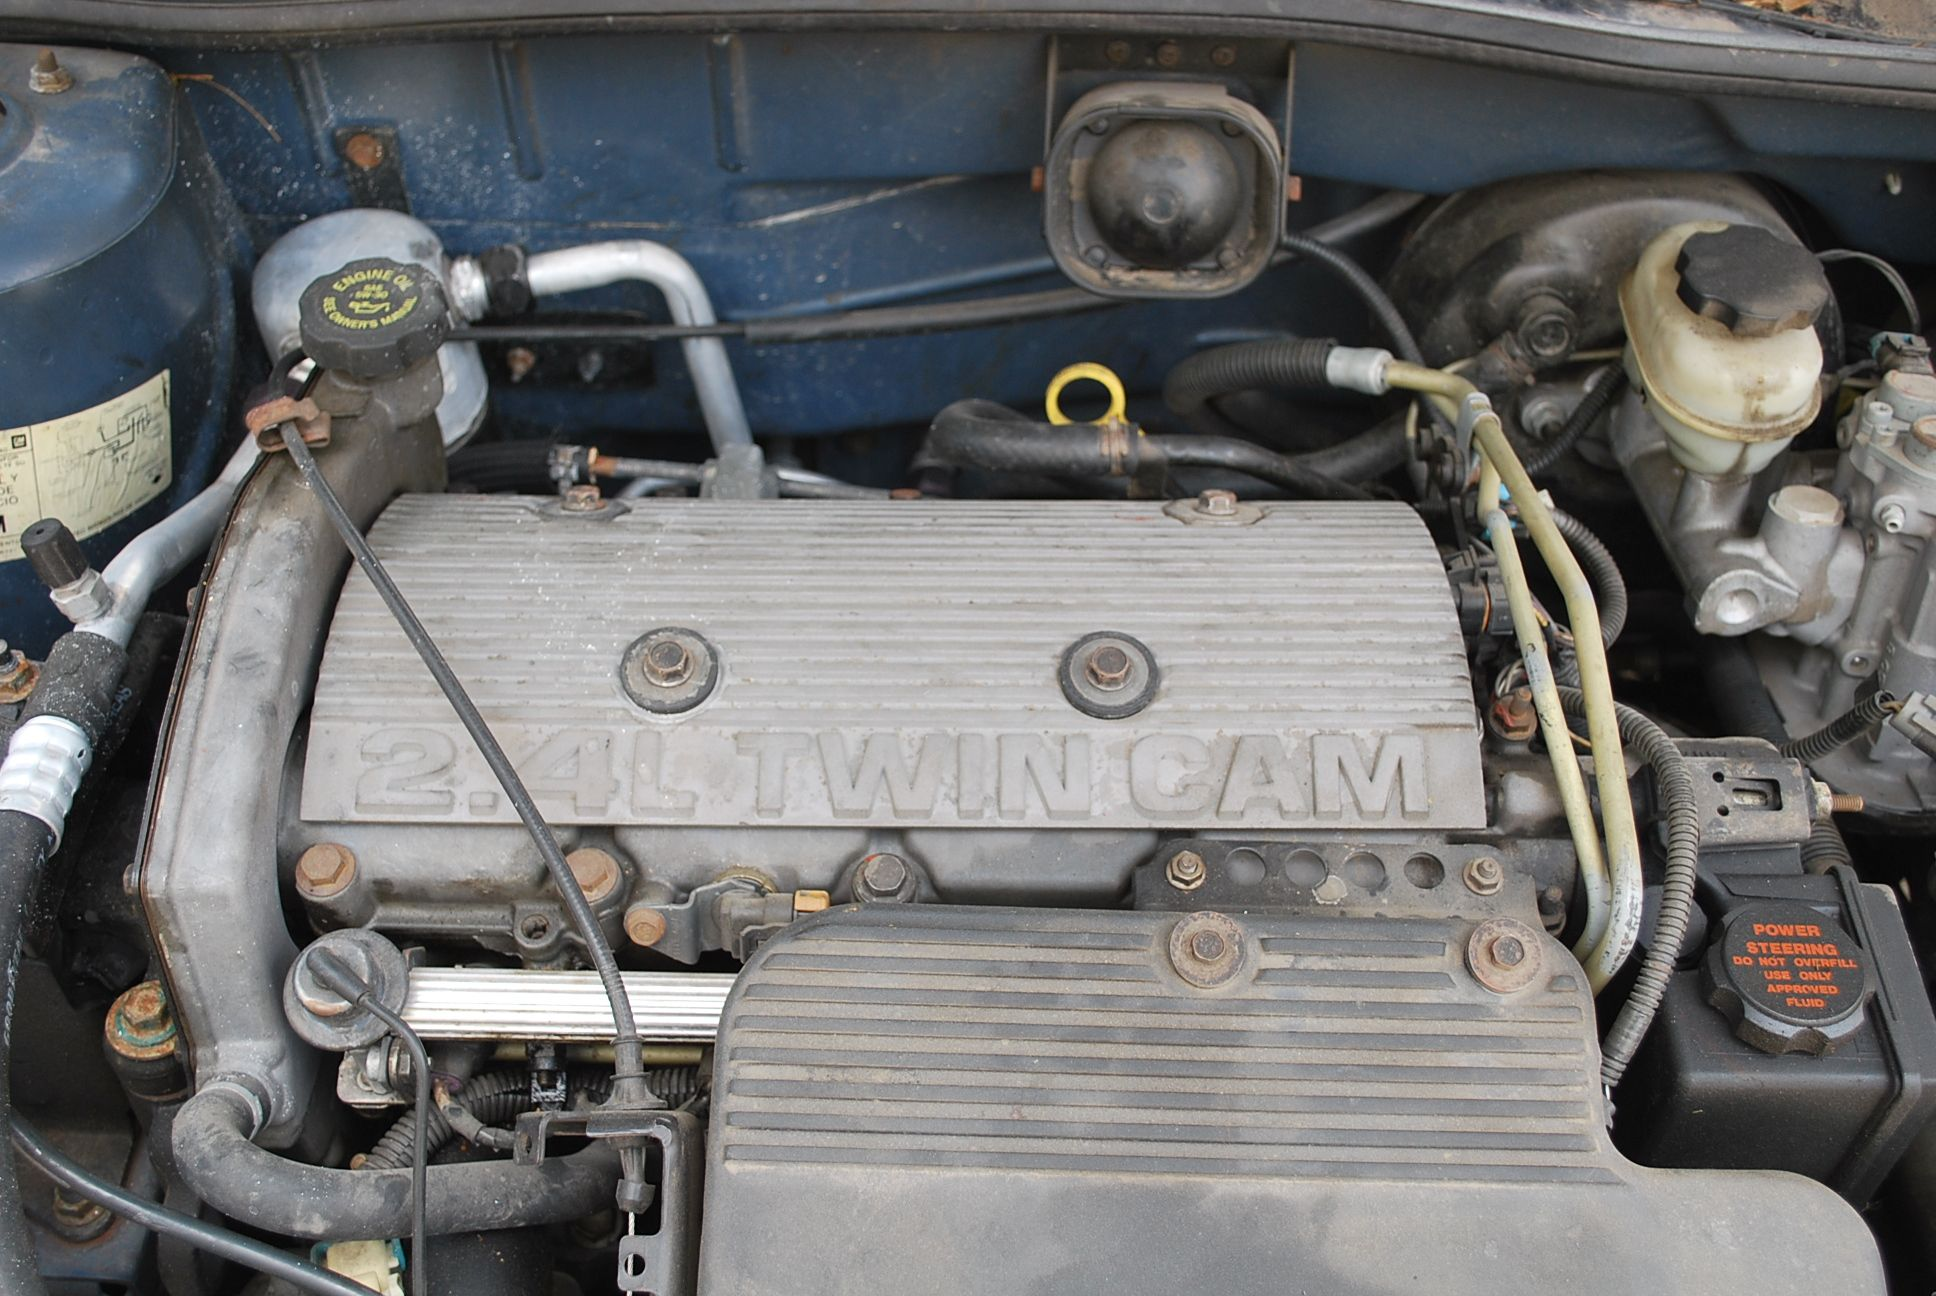 File:2.4L Twin Cam.jpg